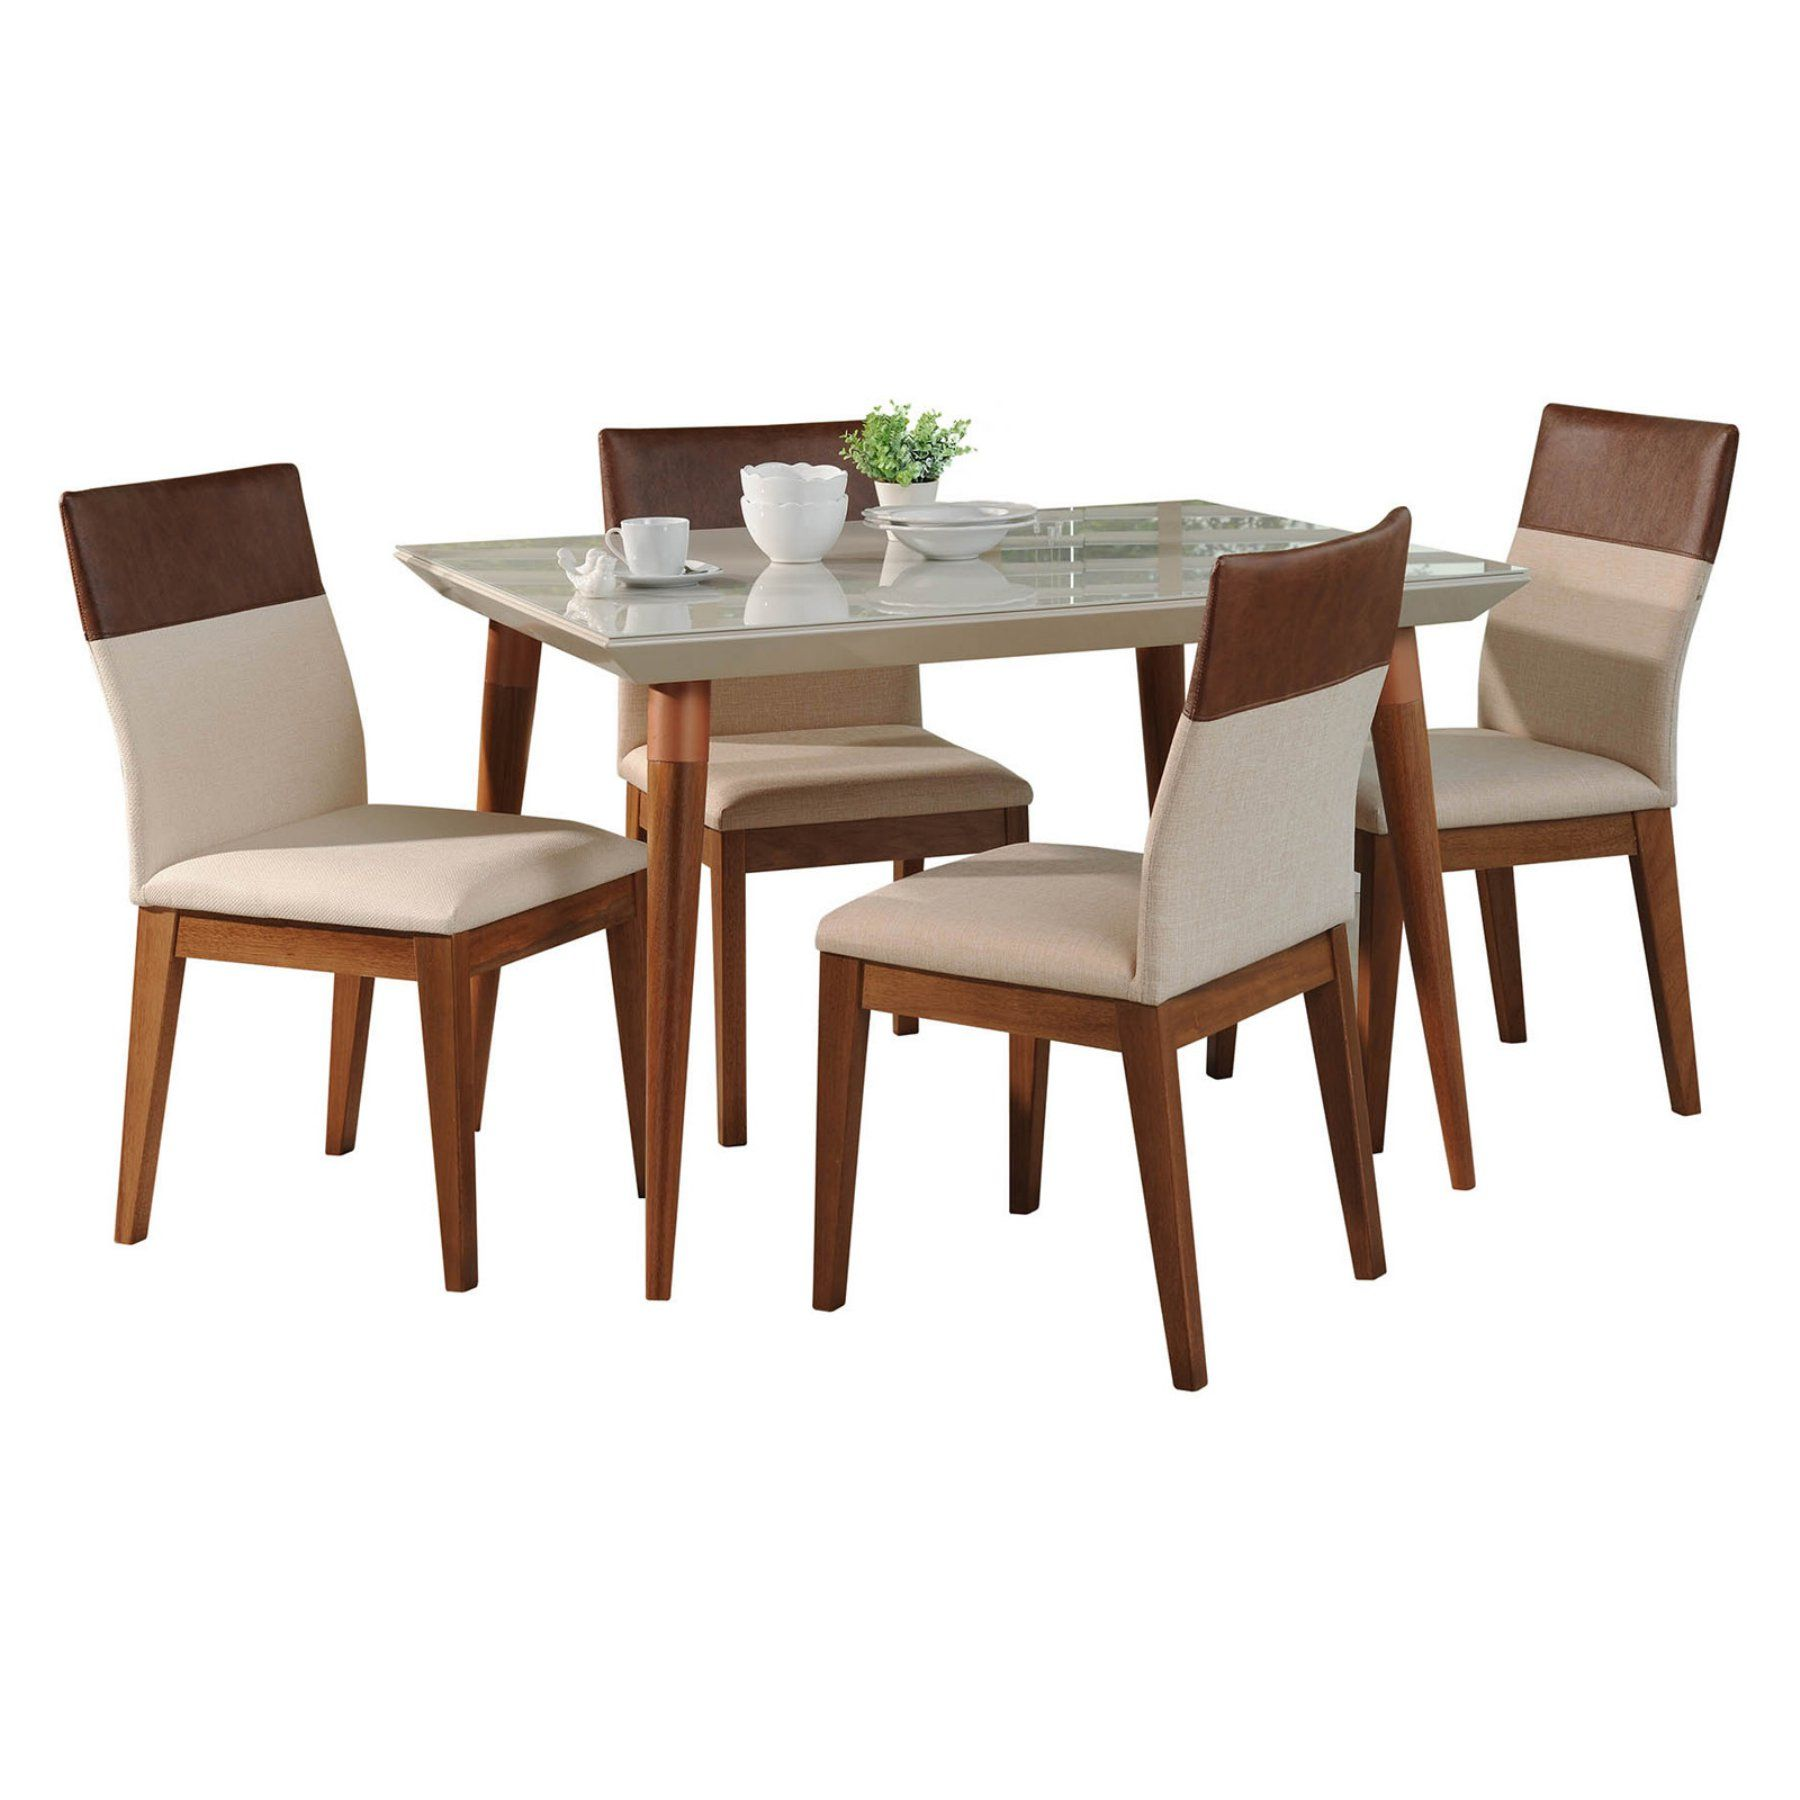 Magnificent Manhattan Comfort Utopia And Duke 5 Piece Dining Table Set Gmtry Best Dining Table And Chair Ideas Images Gmtryco